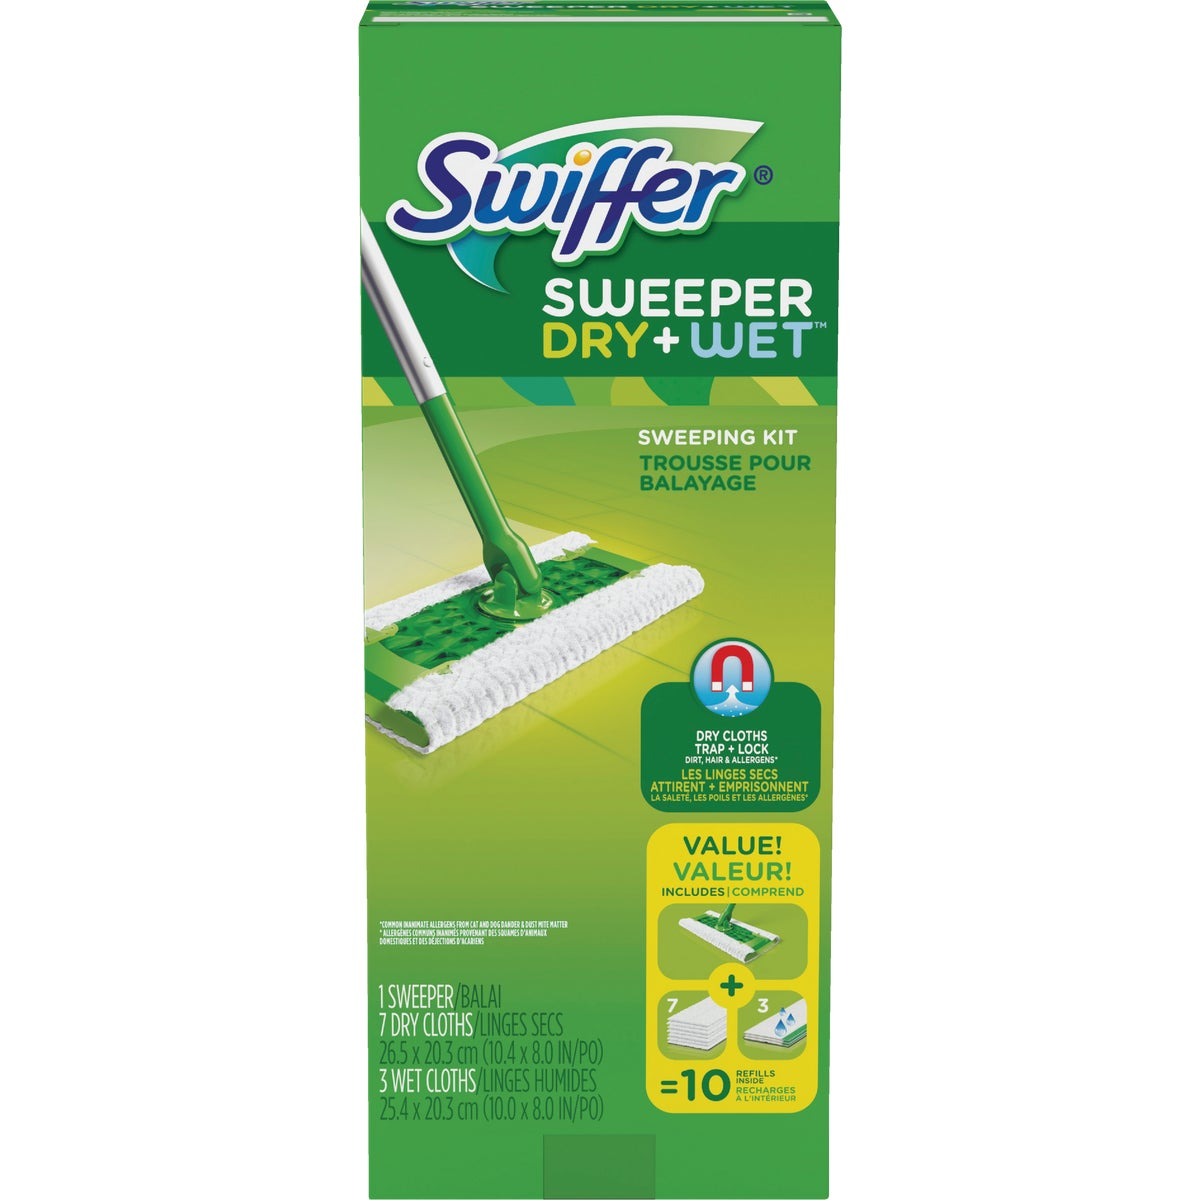 SWIFFER STARTER KIT - 30942 by Procter & Gamble